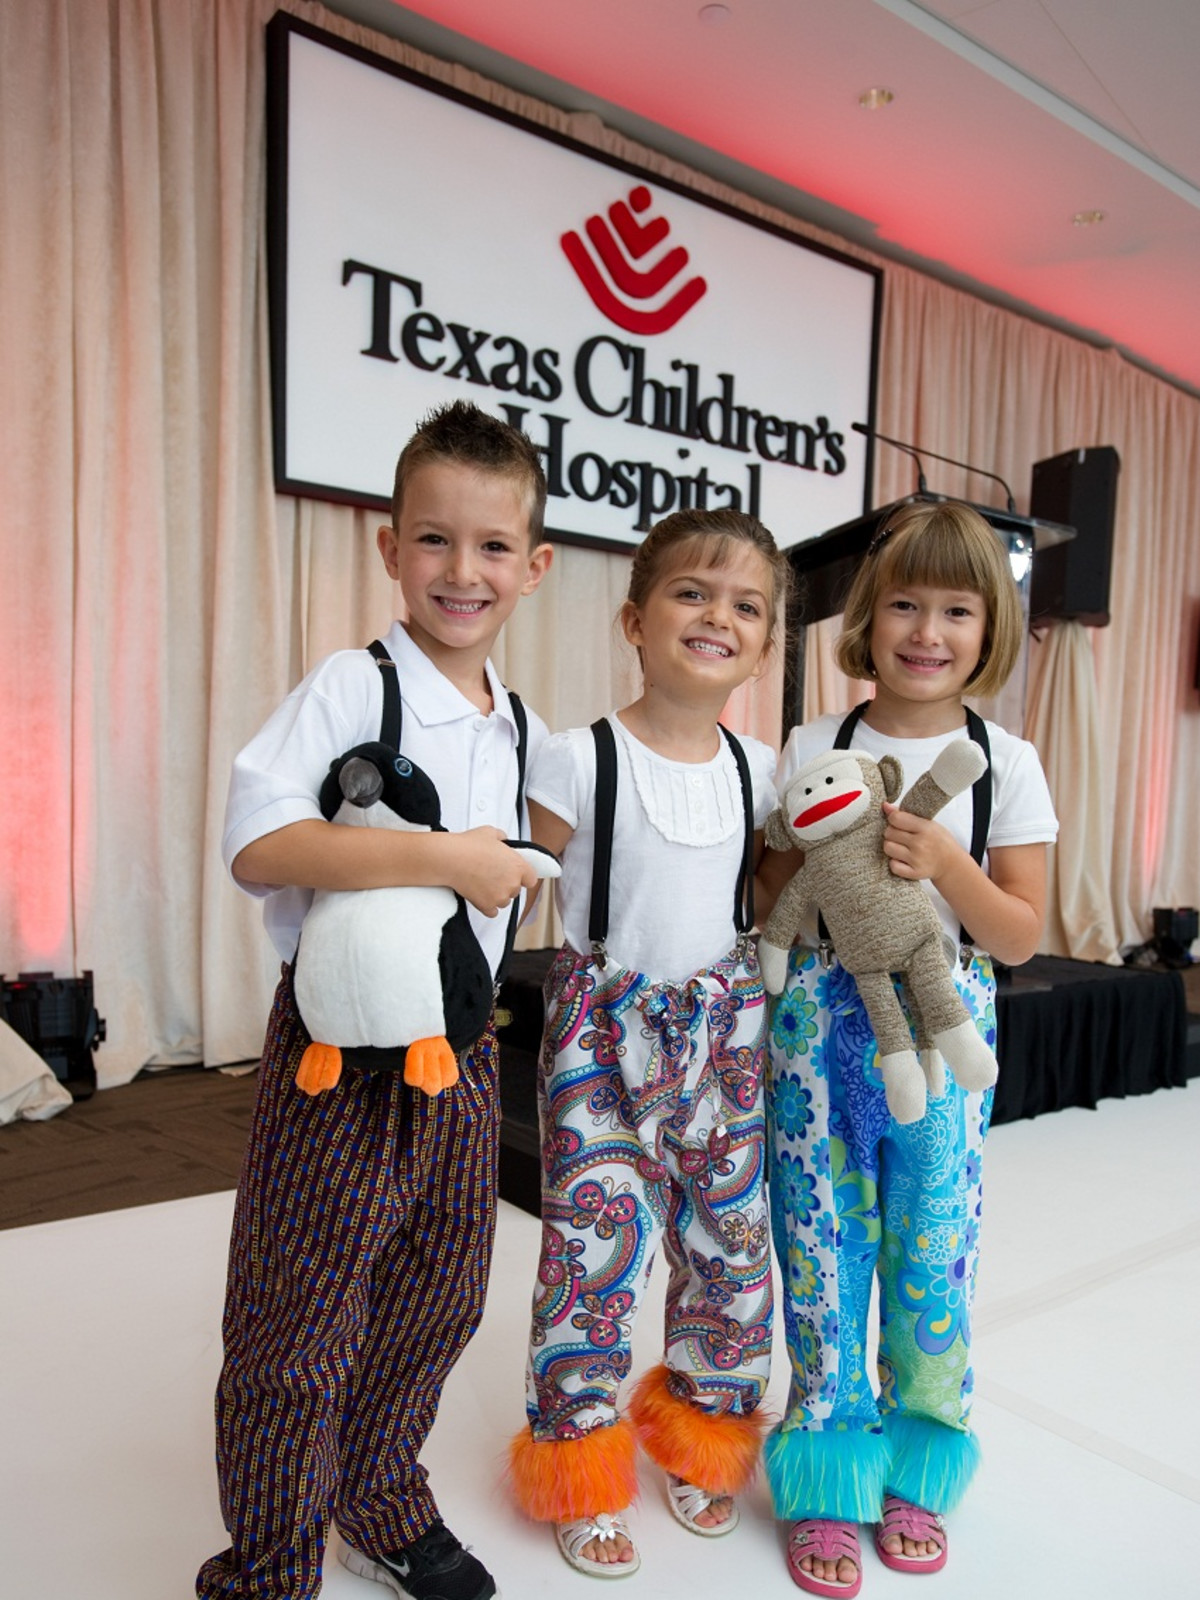 Bad Pants Fashion Show, Texas Children's Hospital, Aiden Questell, Alexa Questell, Evelyn Questell,